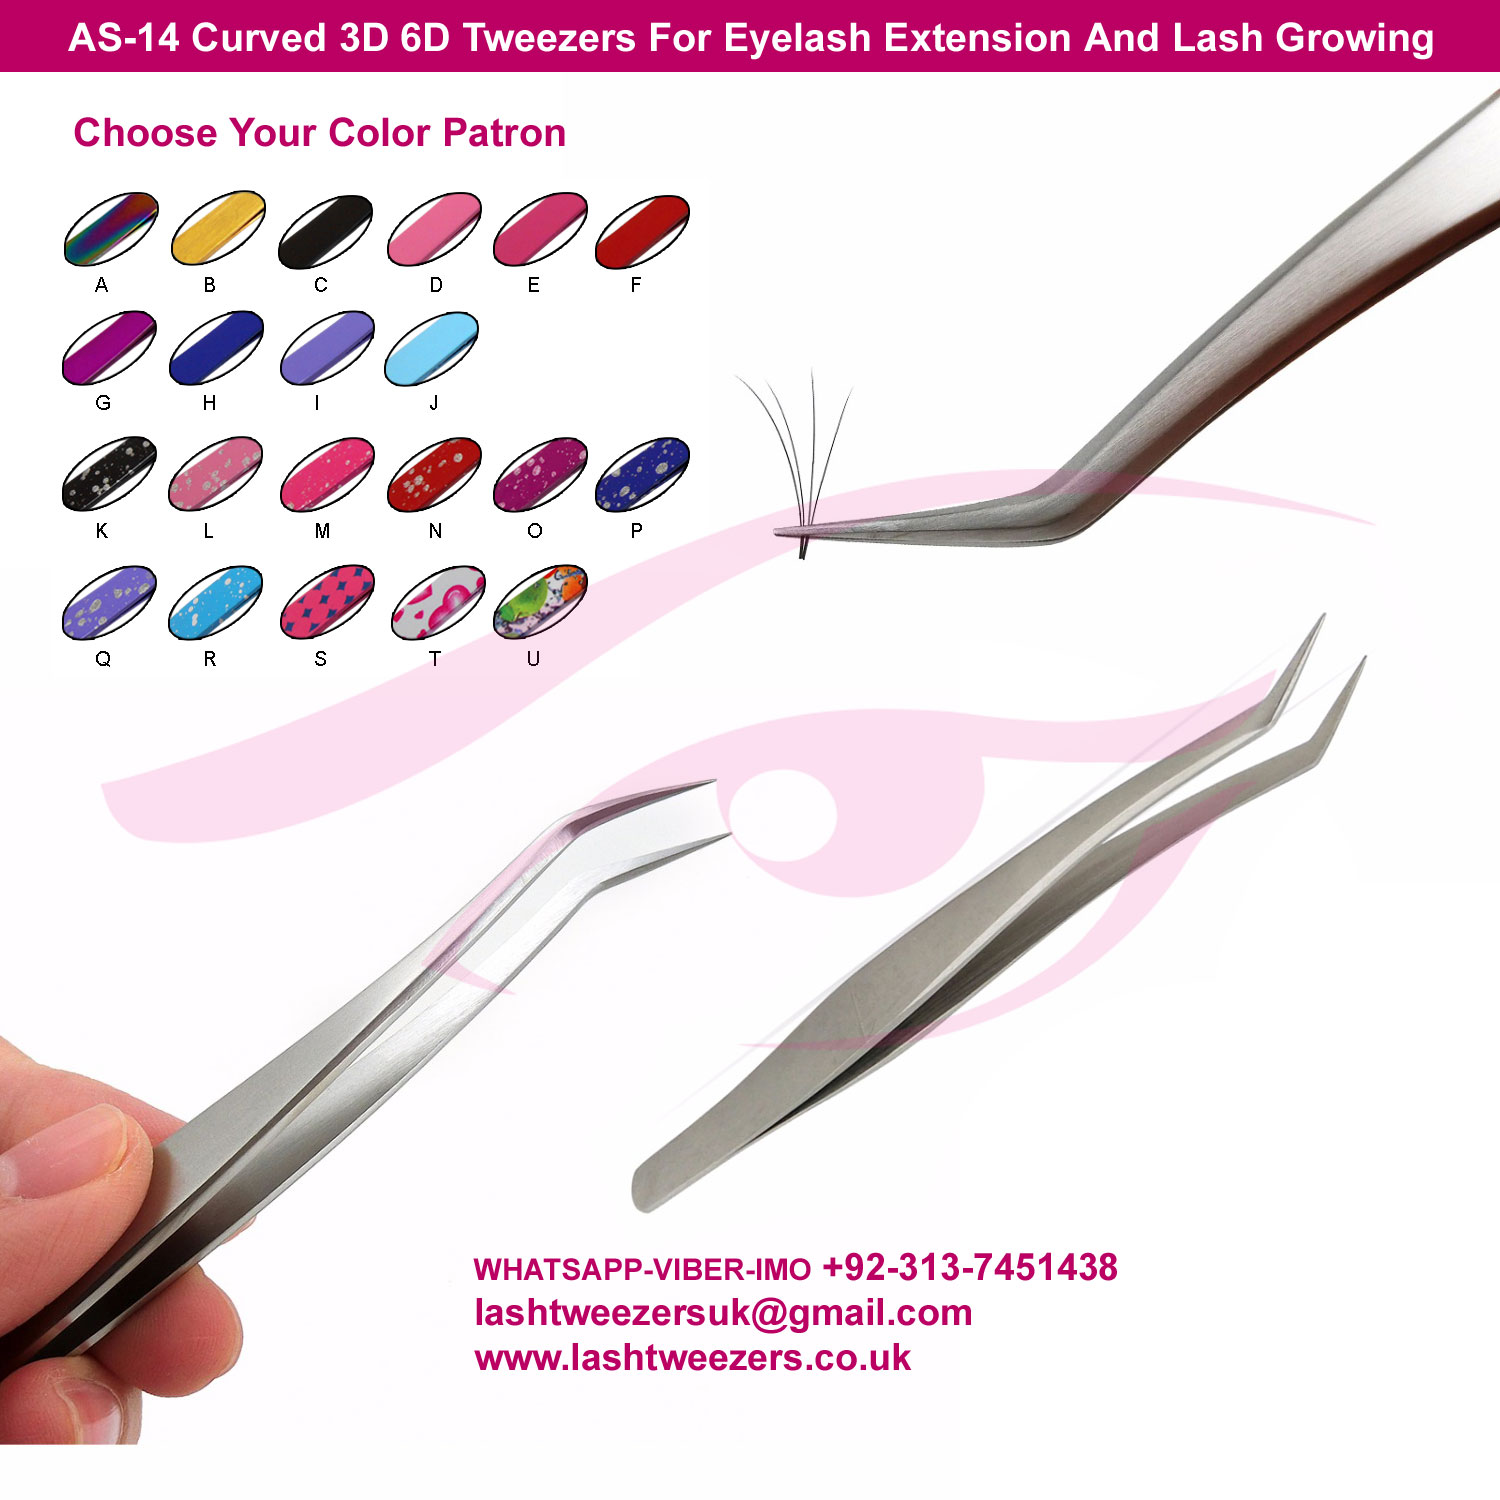 AS-14-Curved-3D-6D-Tweezers-For-Eyelash-Extension-And-Lash-Growing